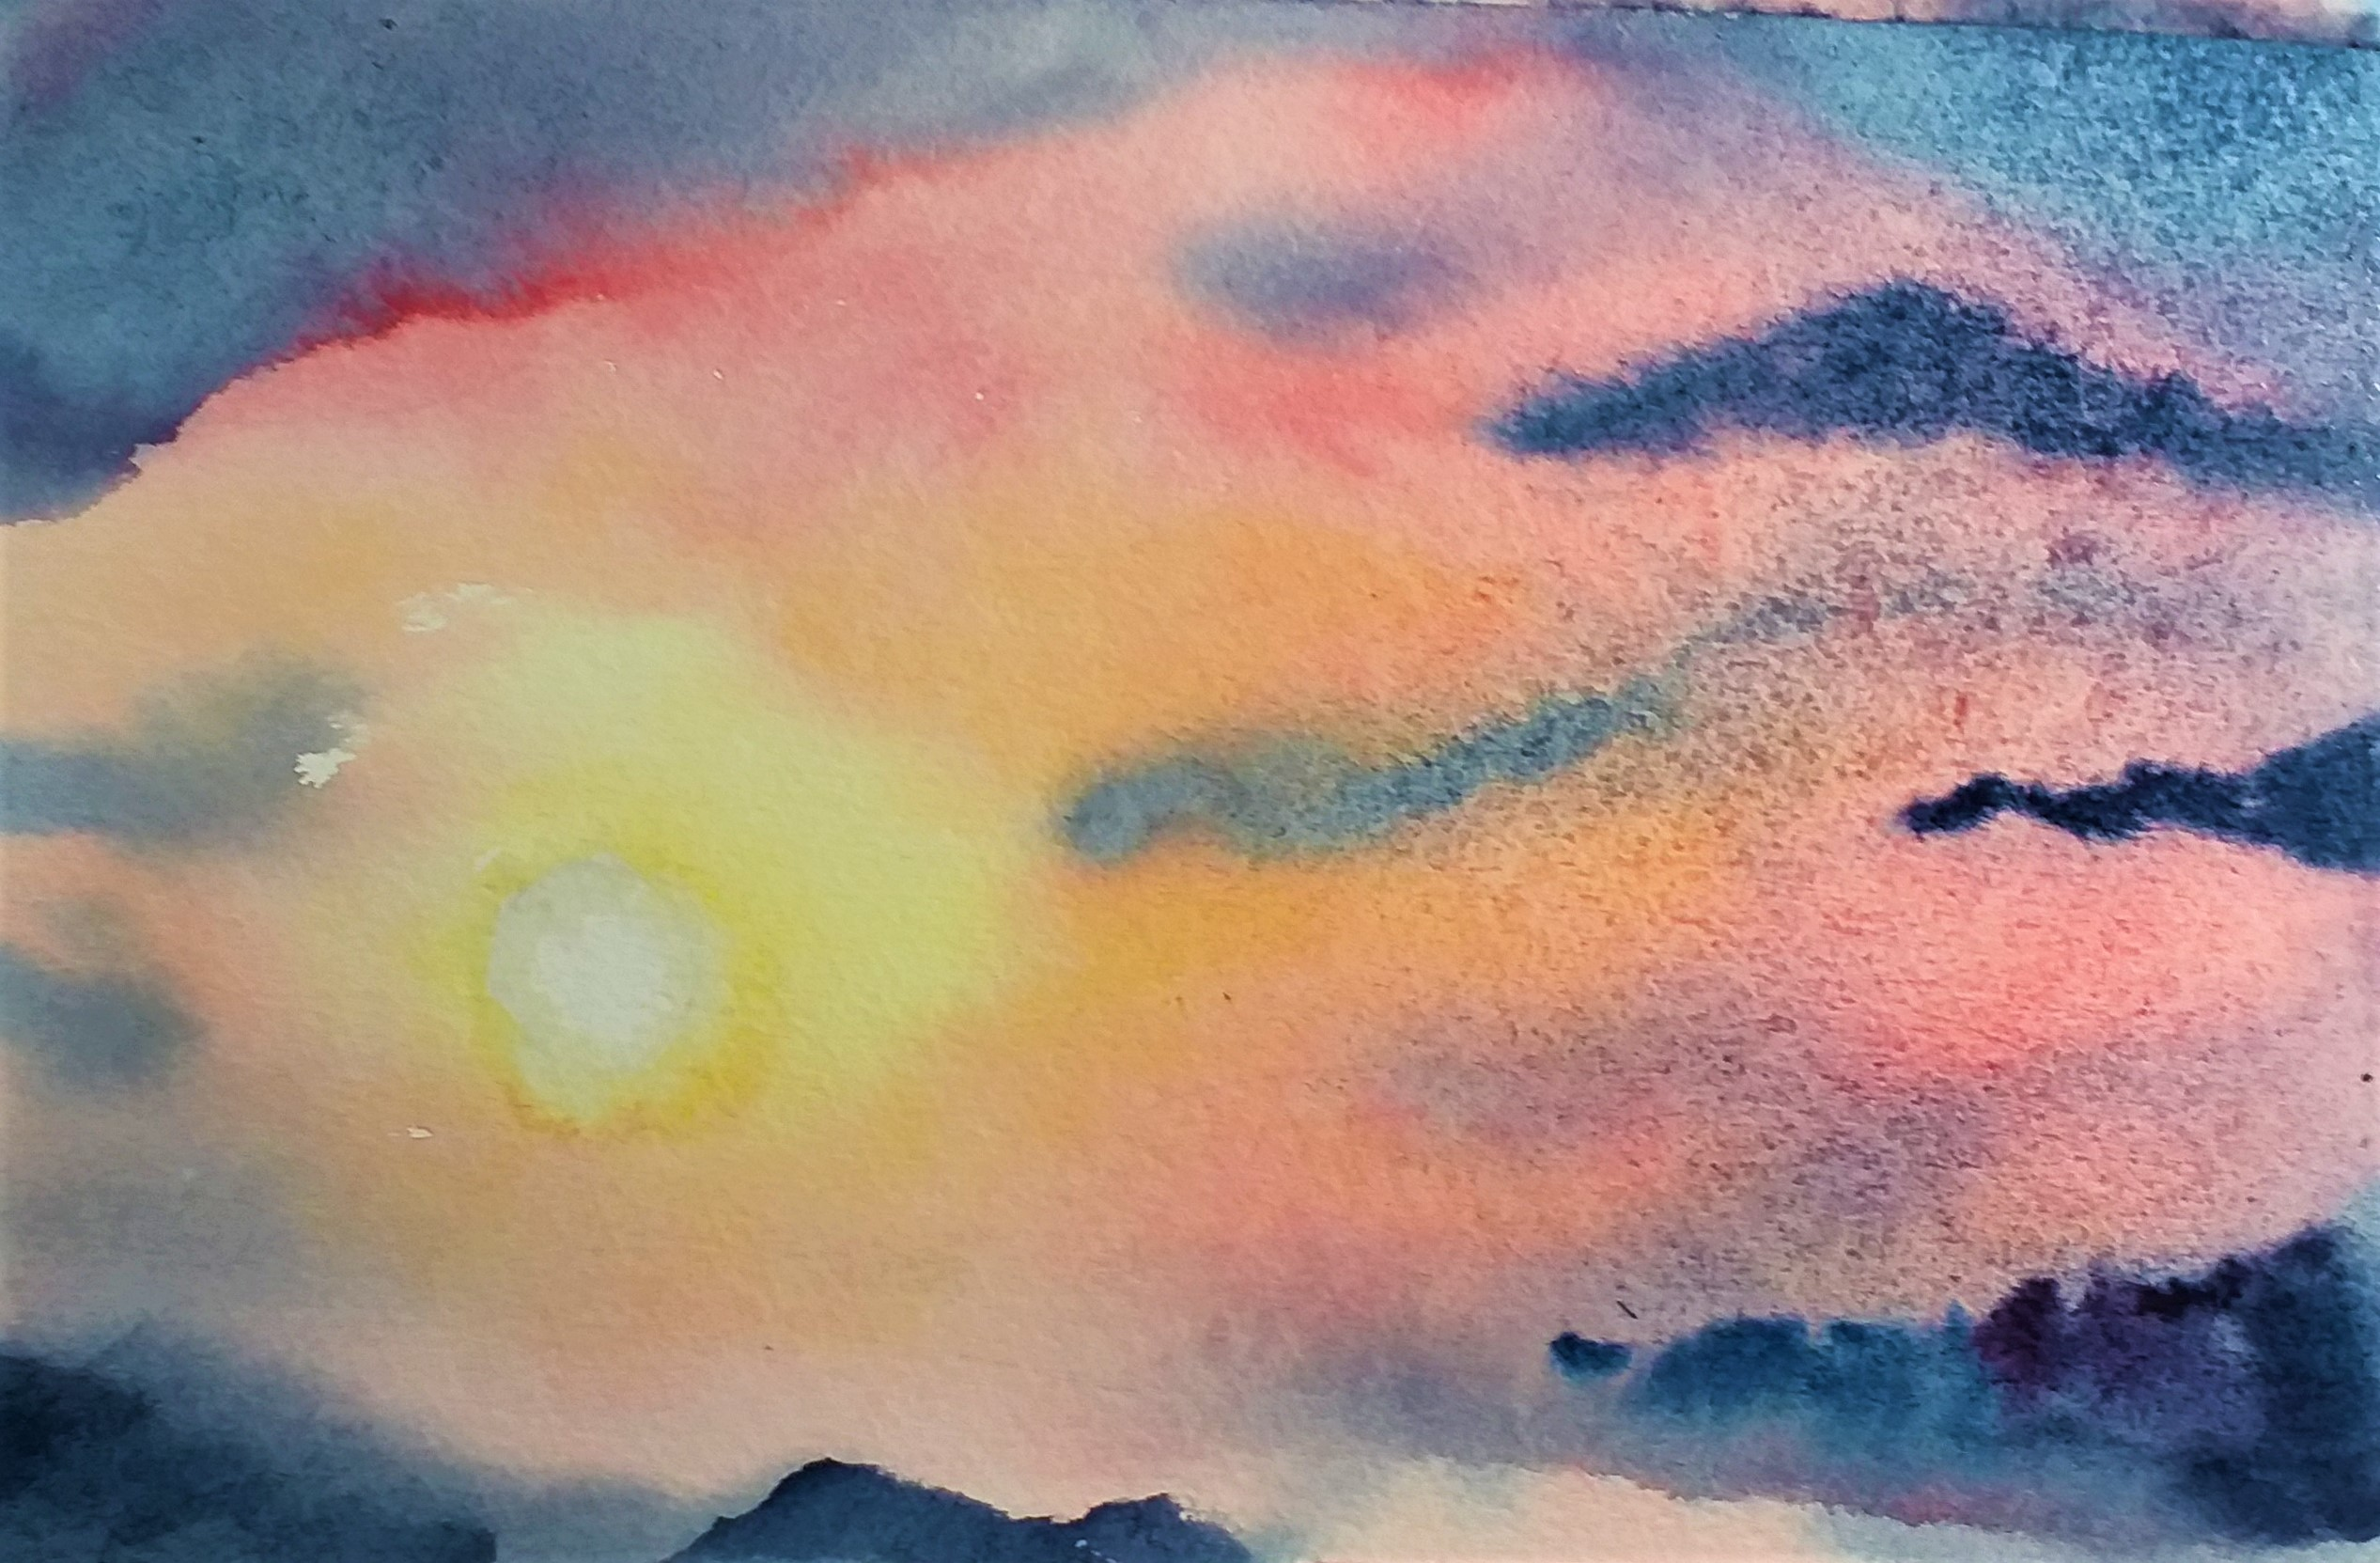 Marion's watercolour of sunset created at Raya's art classes